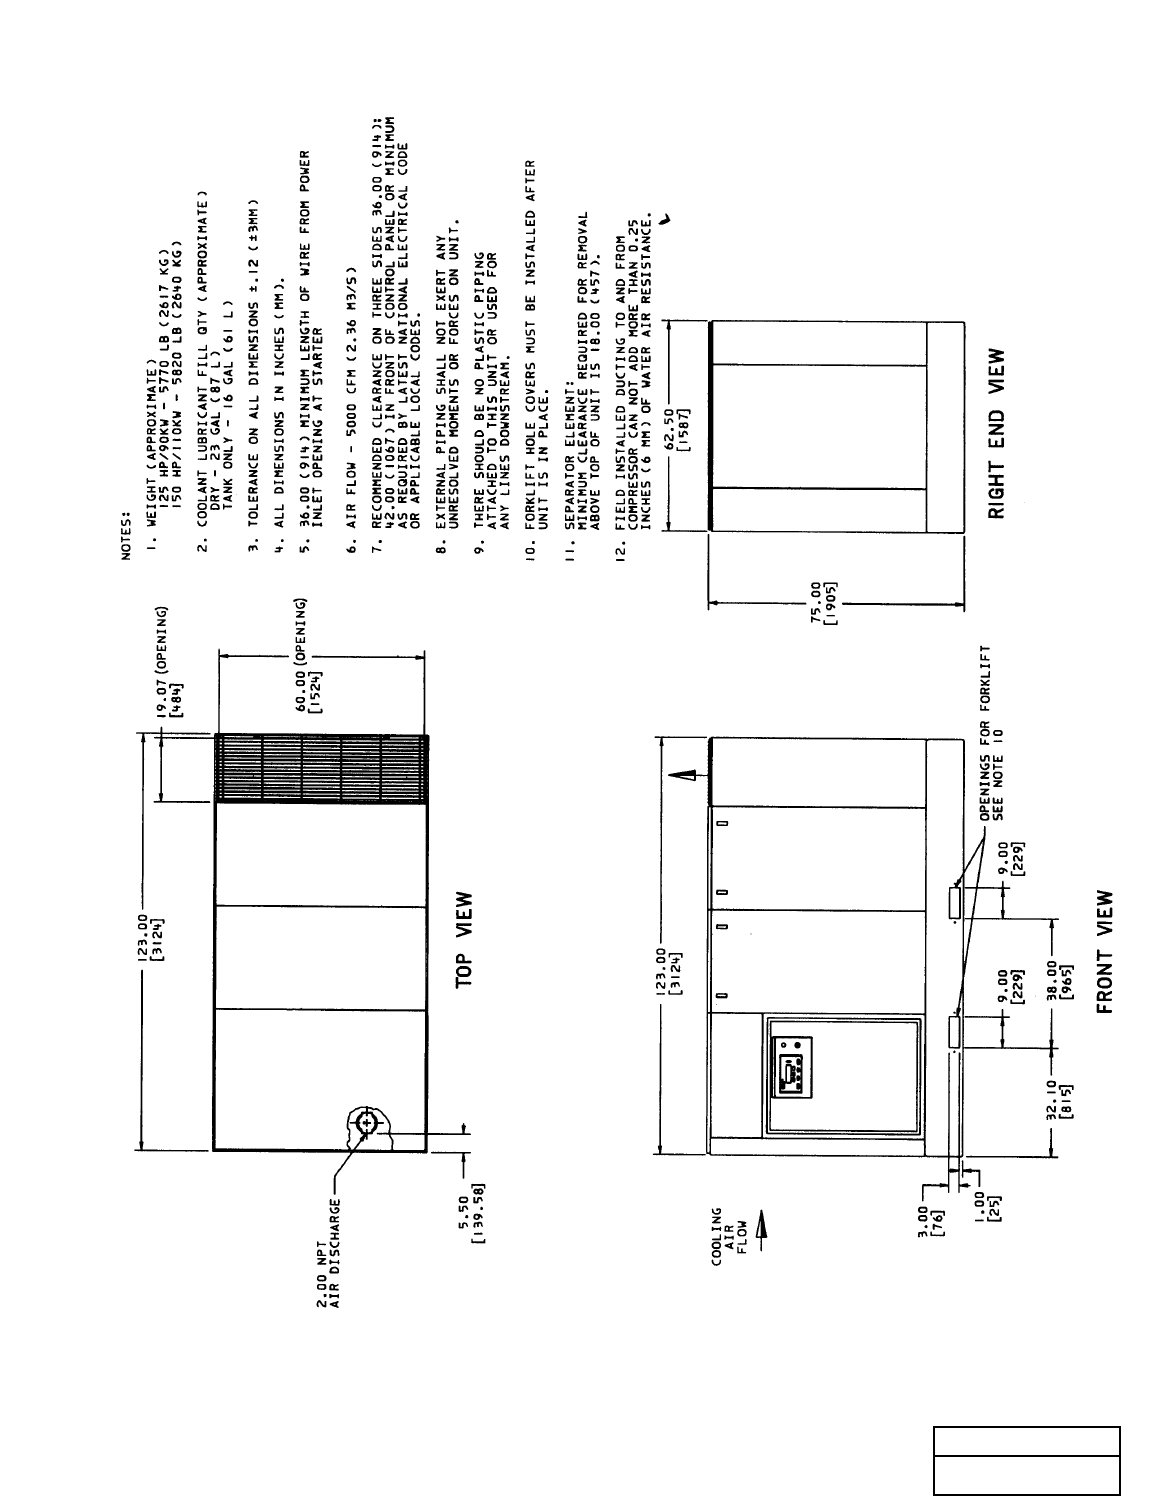 Page 58 of Ingersoll-Rand Air Compressor 125-200 HP/90-160